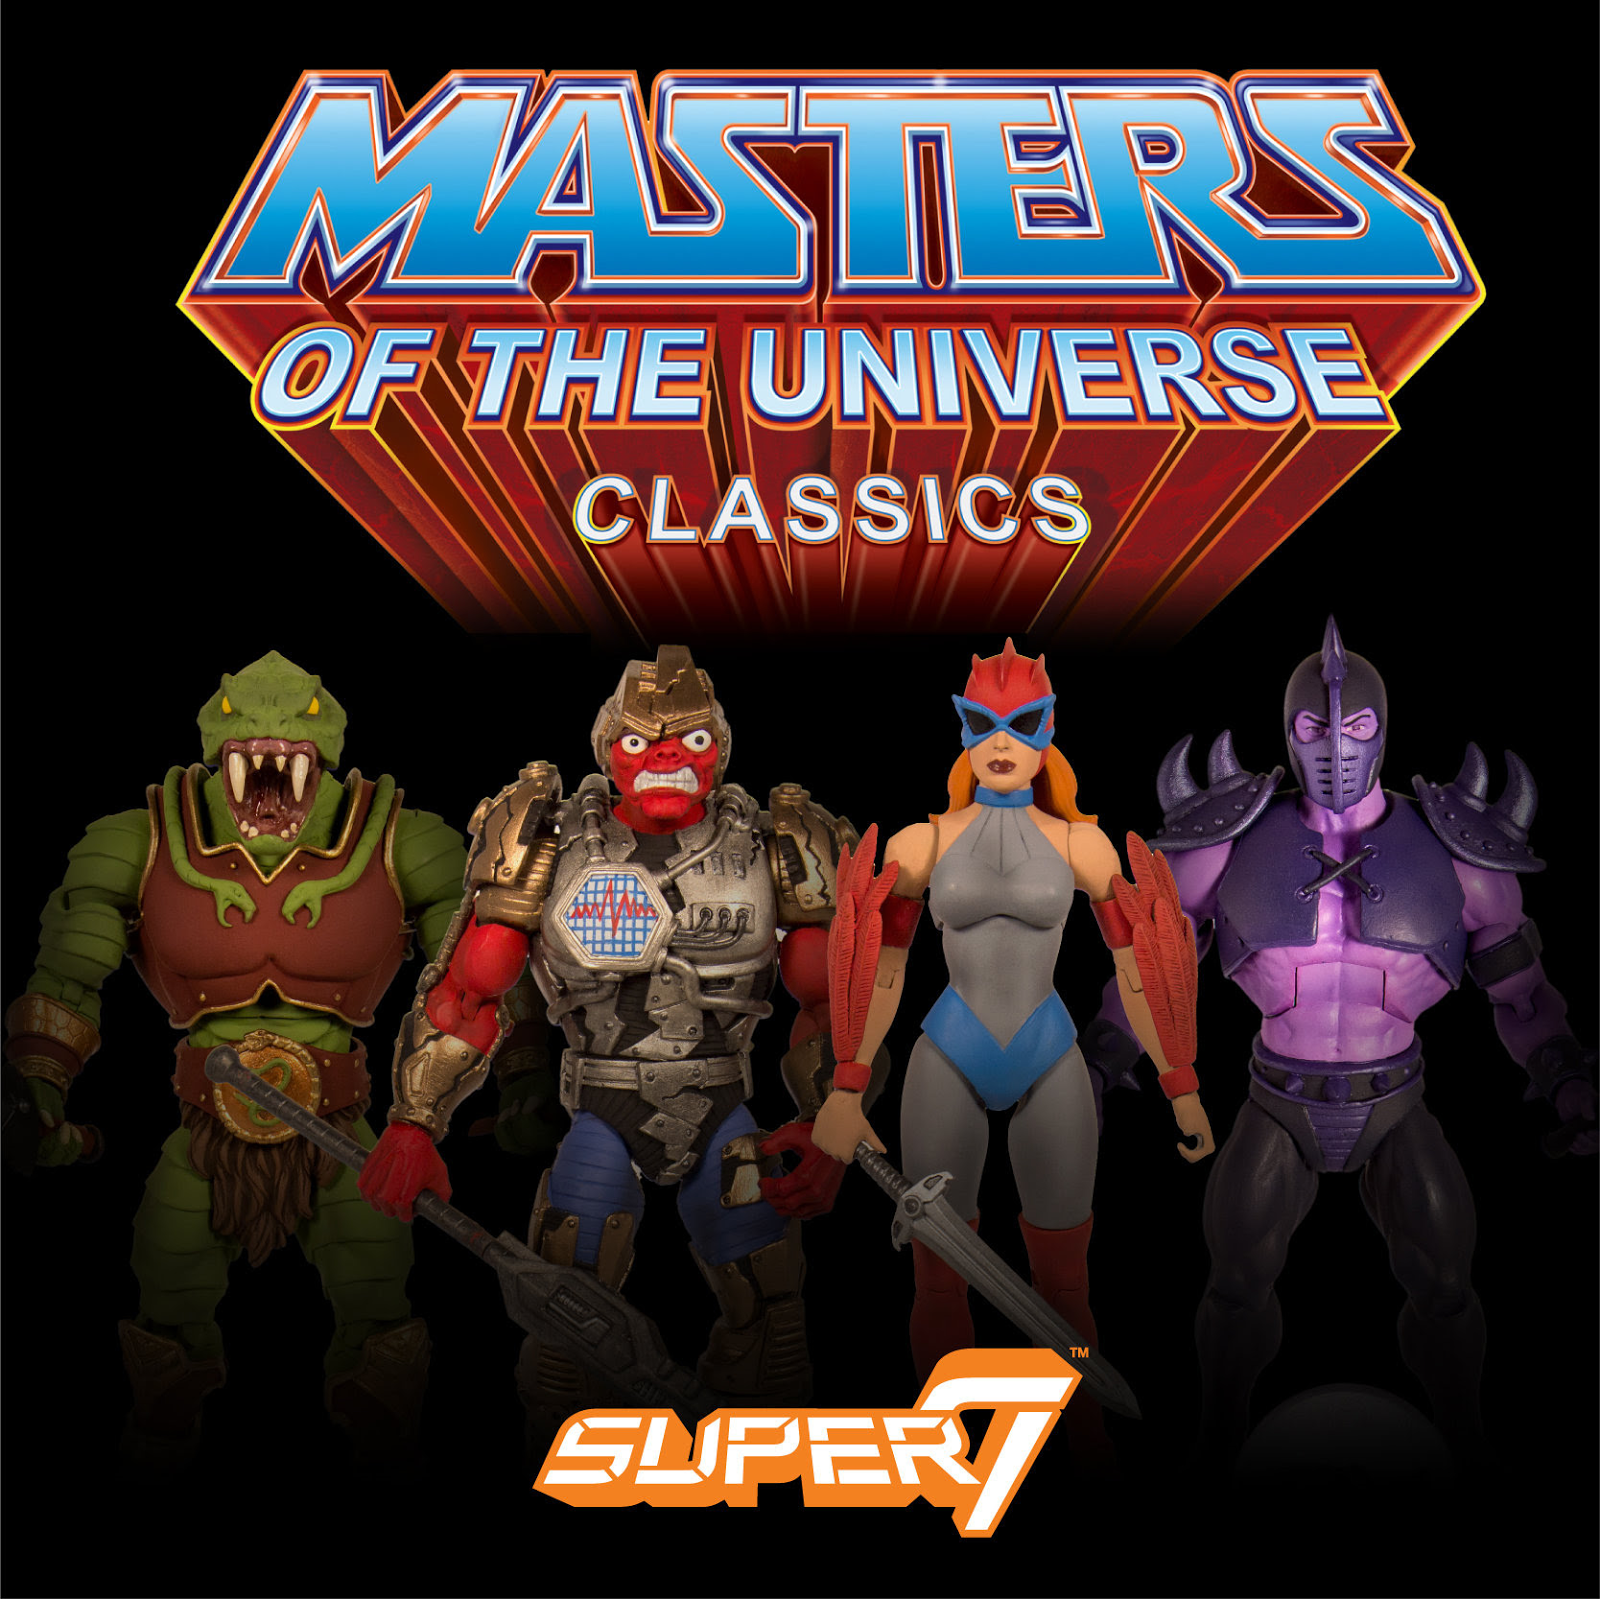 New Masters of the Universe Classics Figures